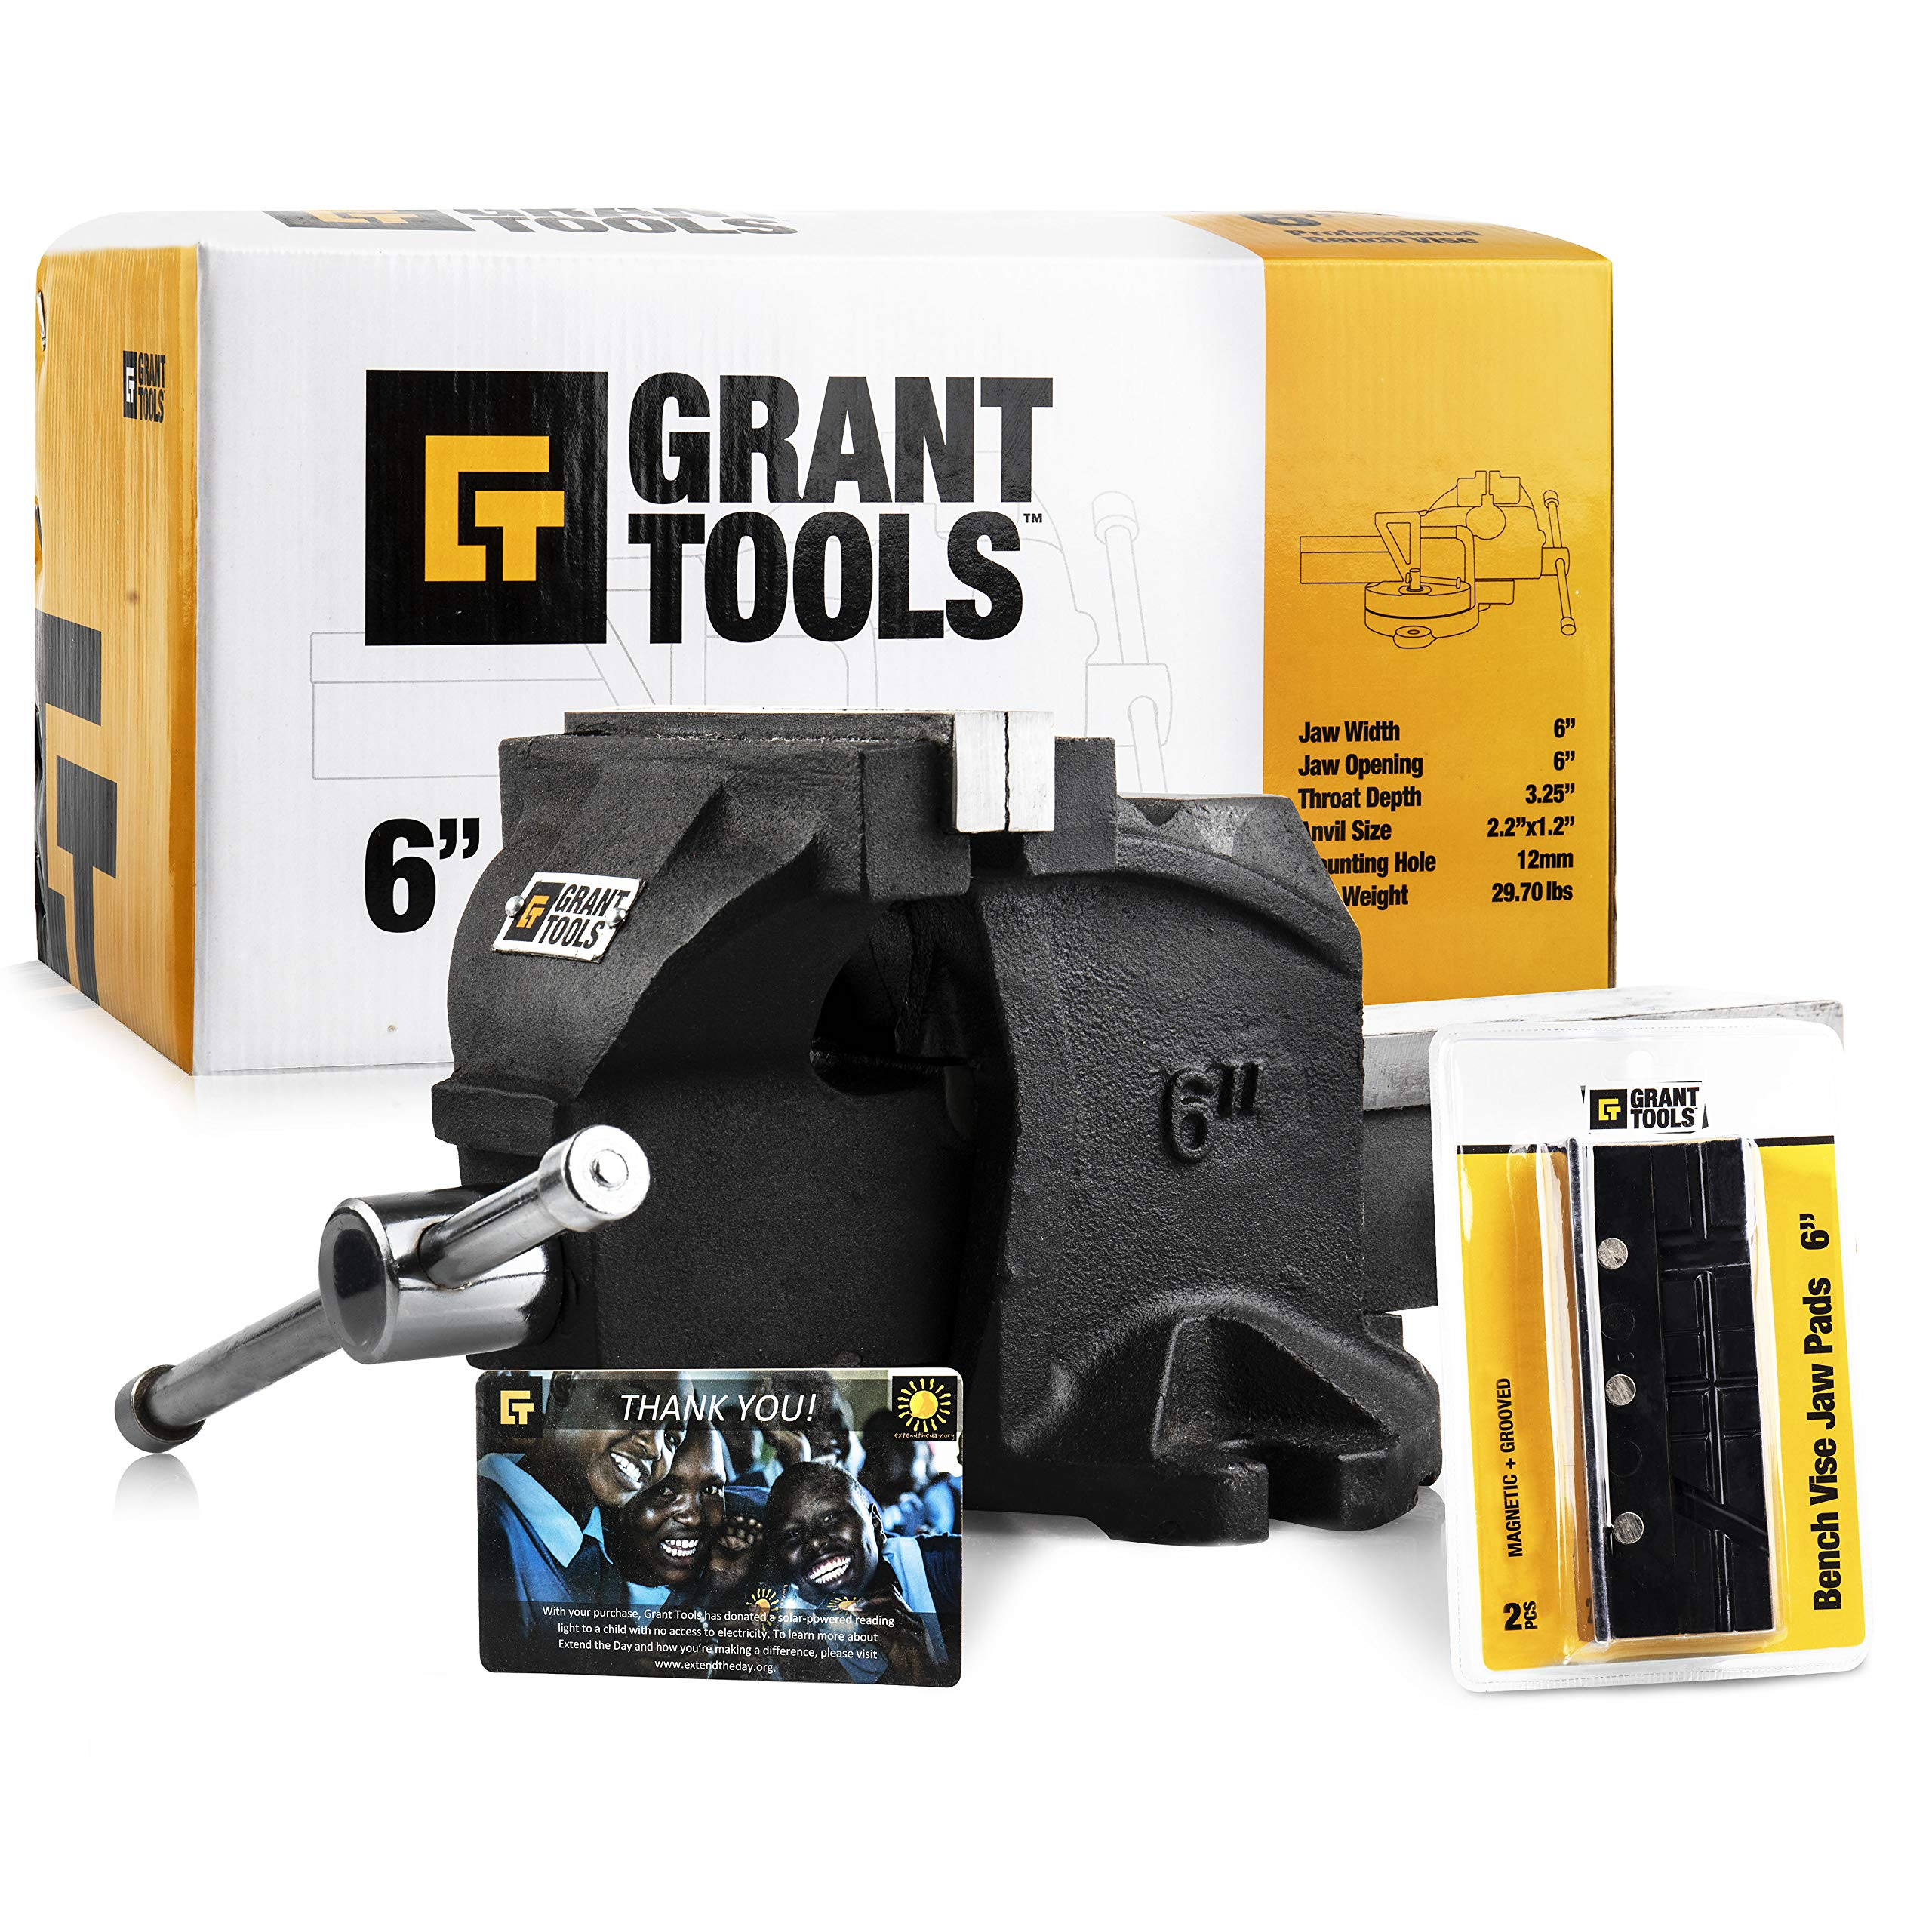 Grant Tools Professional Bench Vise Fixed Base (4'' and 6'' Available) | 2 Vise Jaws Included | With Each Vise Sold 1 Solar Light is Donated to a Child Abroad in Need via Extend The Day (4'') by Grant Tools